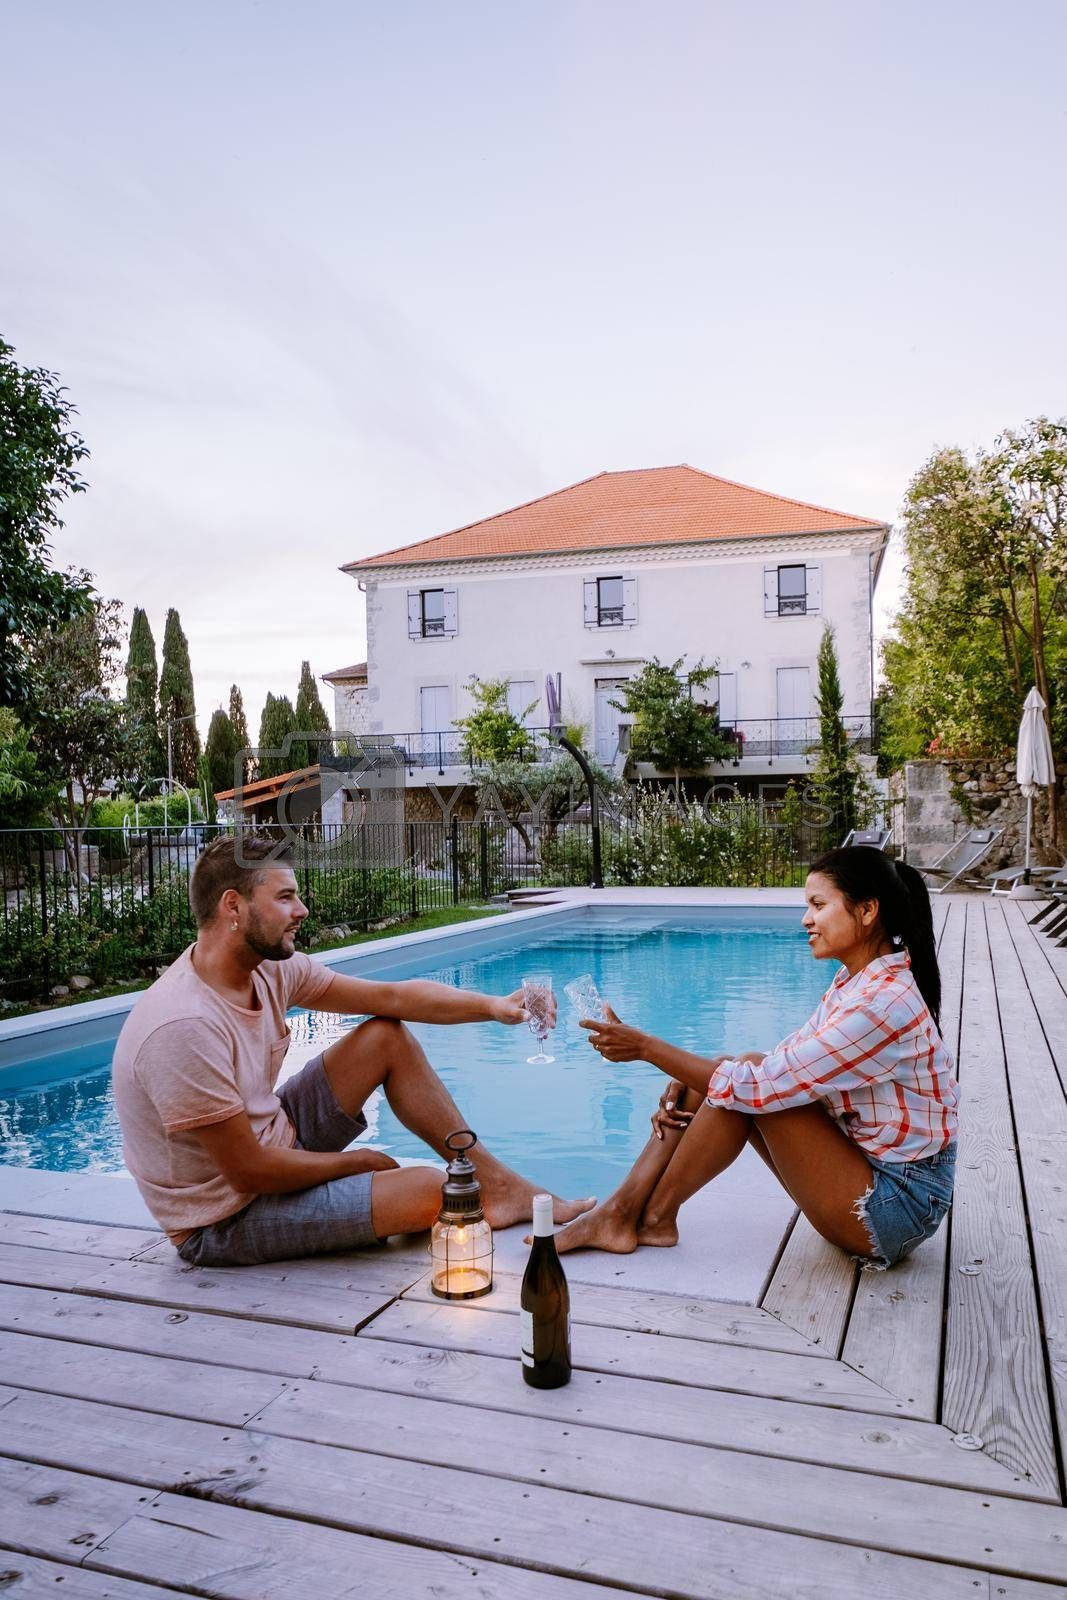 French vacation home with wooden deck and swimming pool in the Ardeche France Europe. Couple relaxing by the pool with wooden deck during luxury vacation at an holiday home in South of France